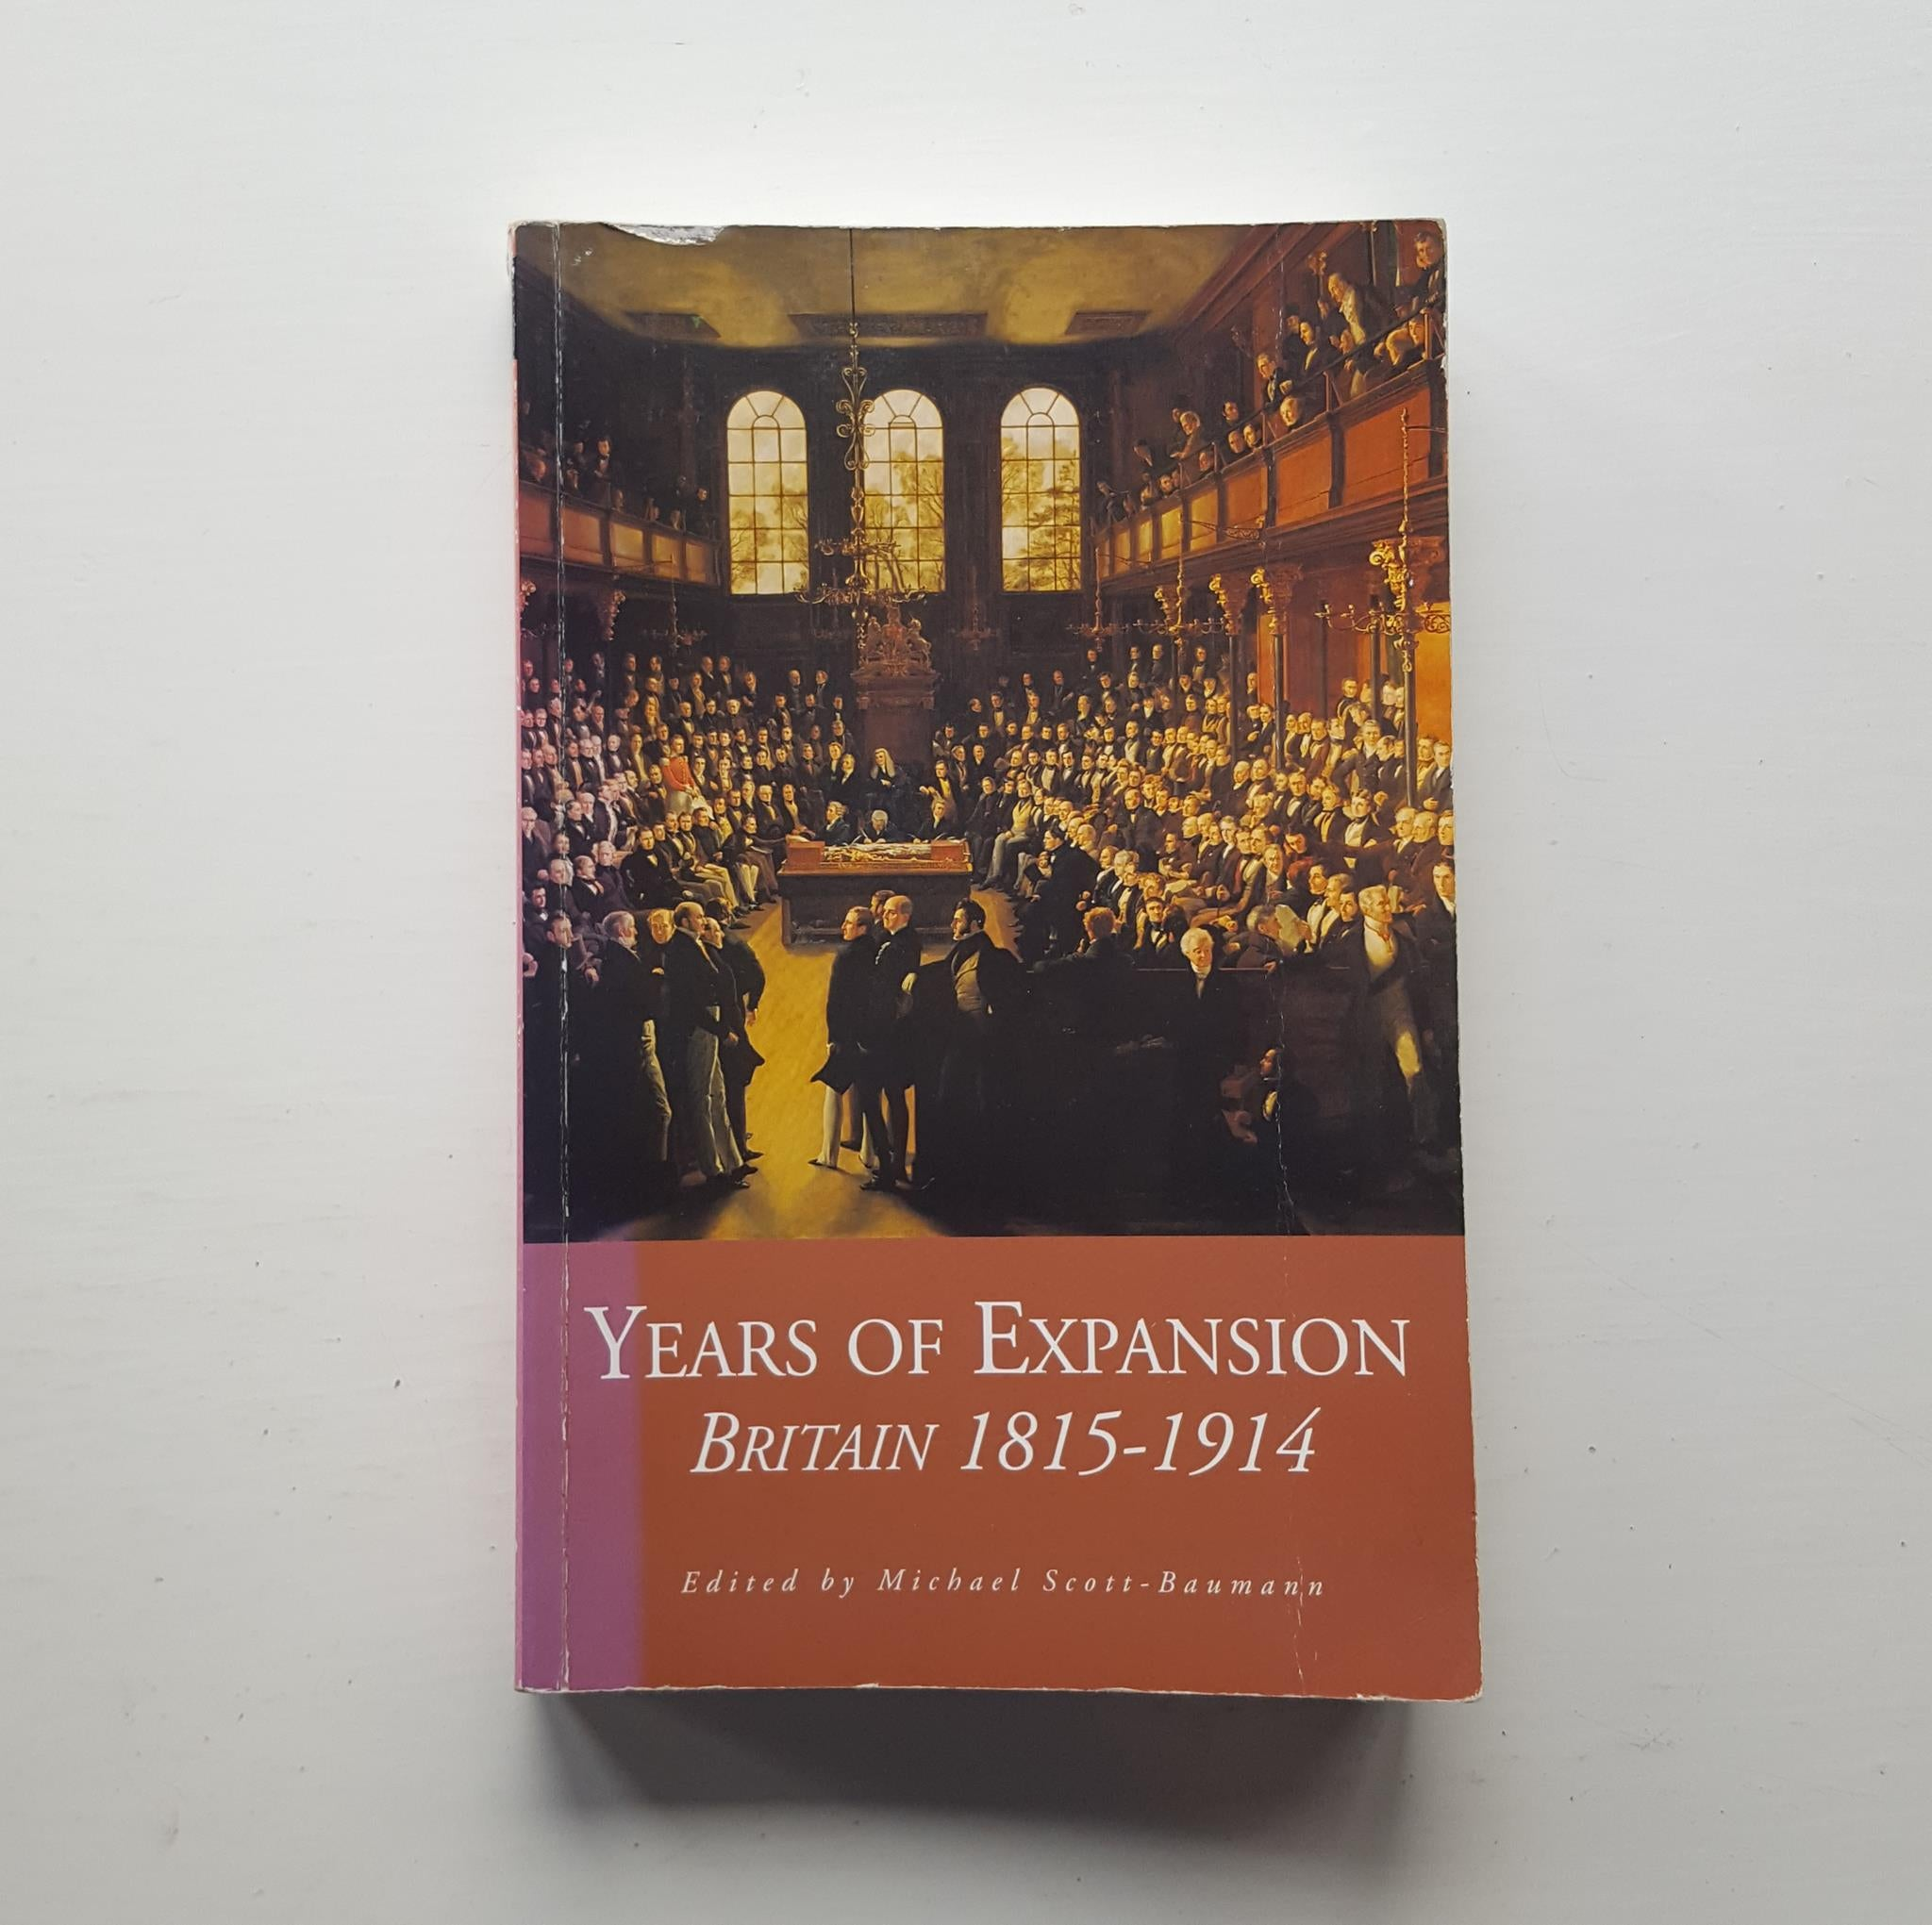 Years of Expansion Britain 1815-1914 by Michael Scott-Baumann (ed)